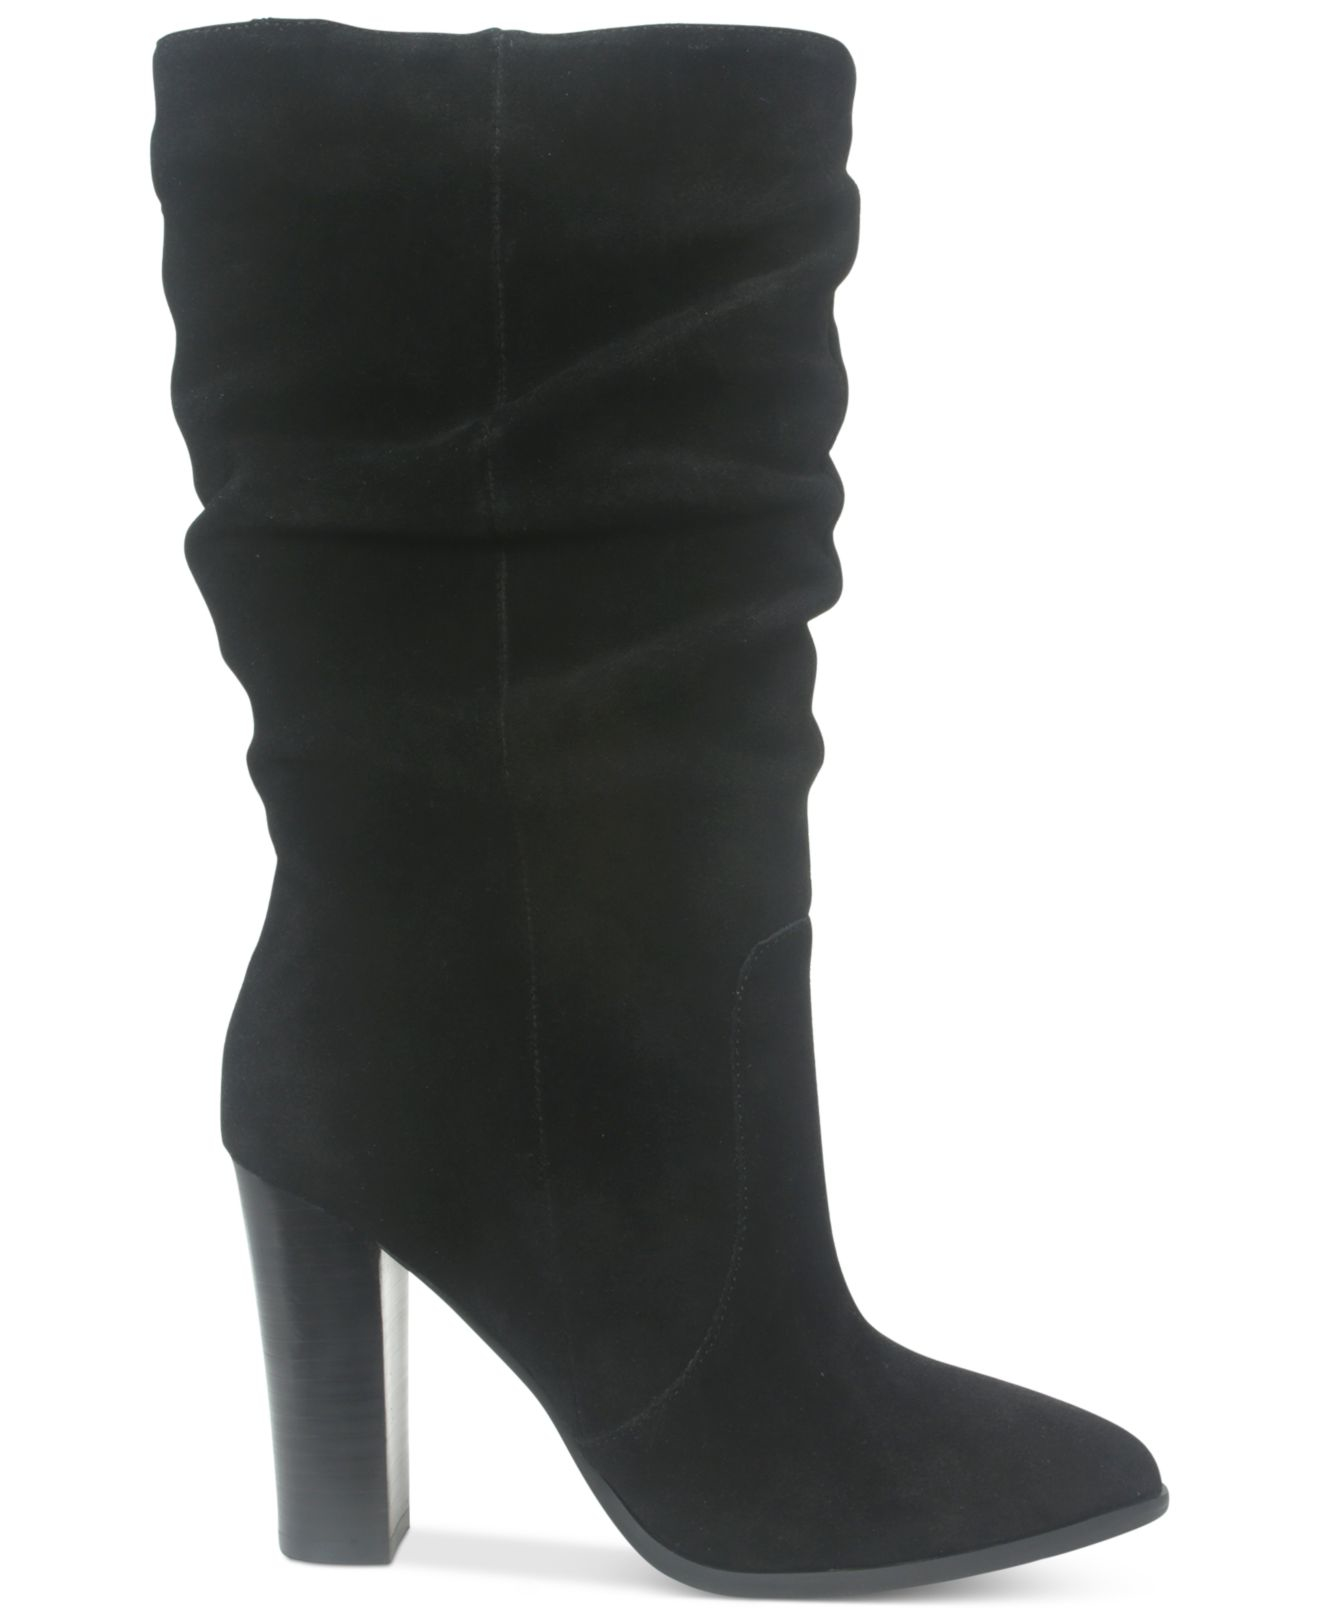 Tahari Alanna Suede Slouchy Mid-calf Boots in Black | Lyst